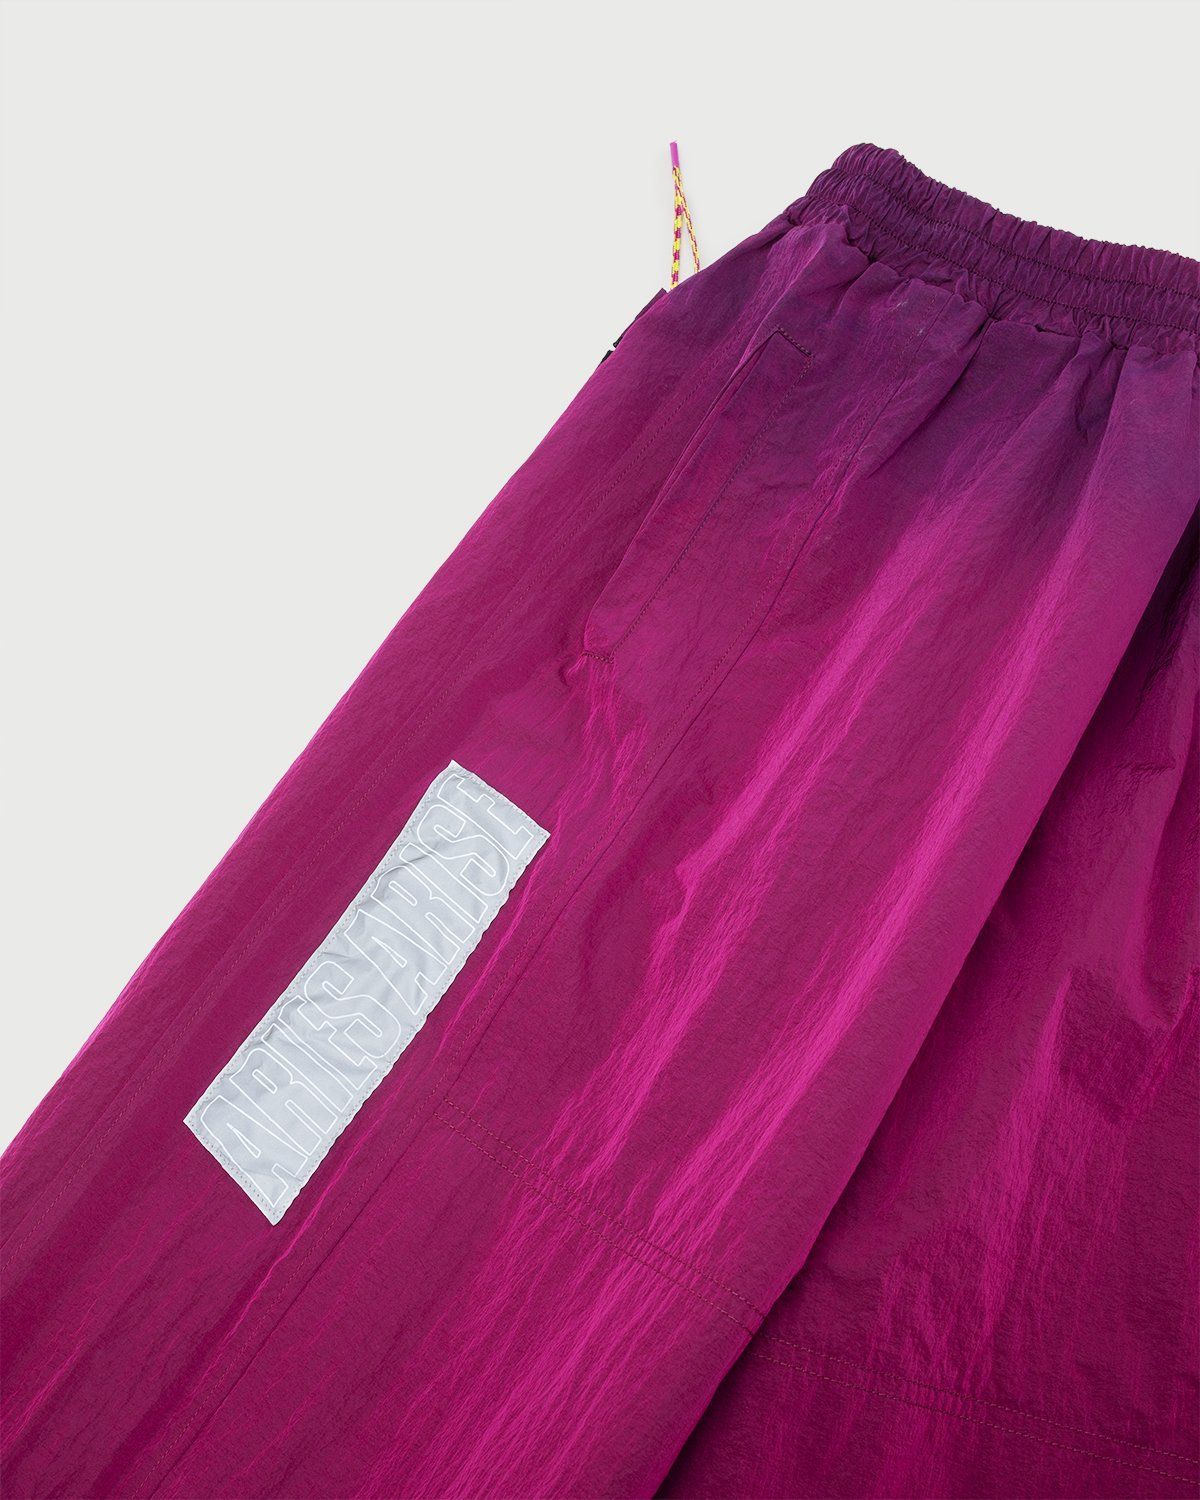 Aries — Ombre Dyed Track Pants Fuchsia - Image 2